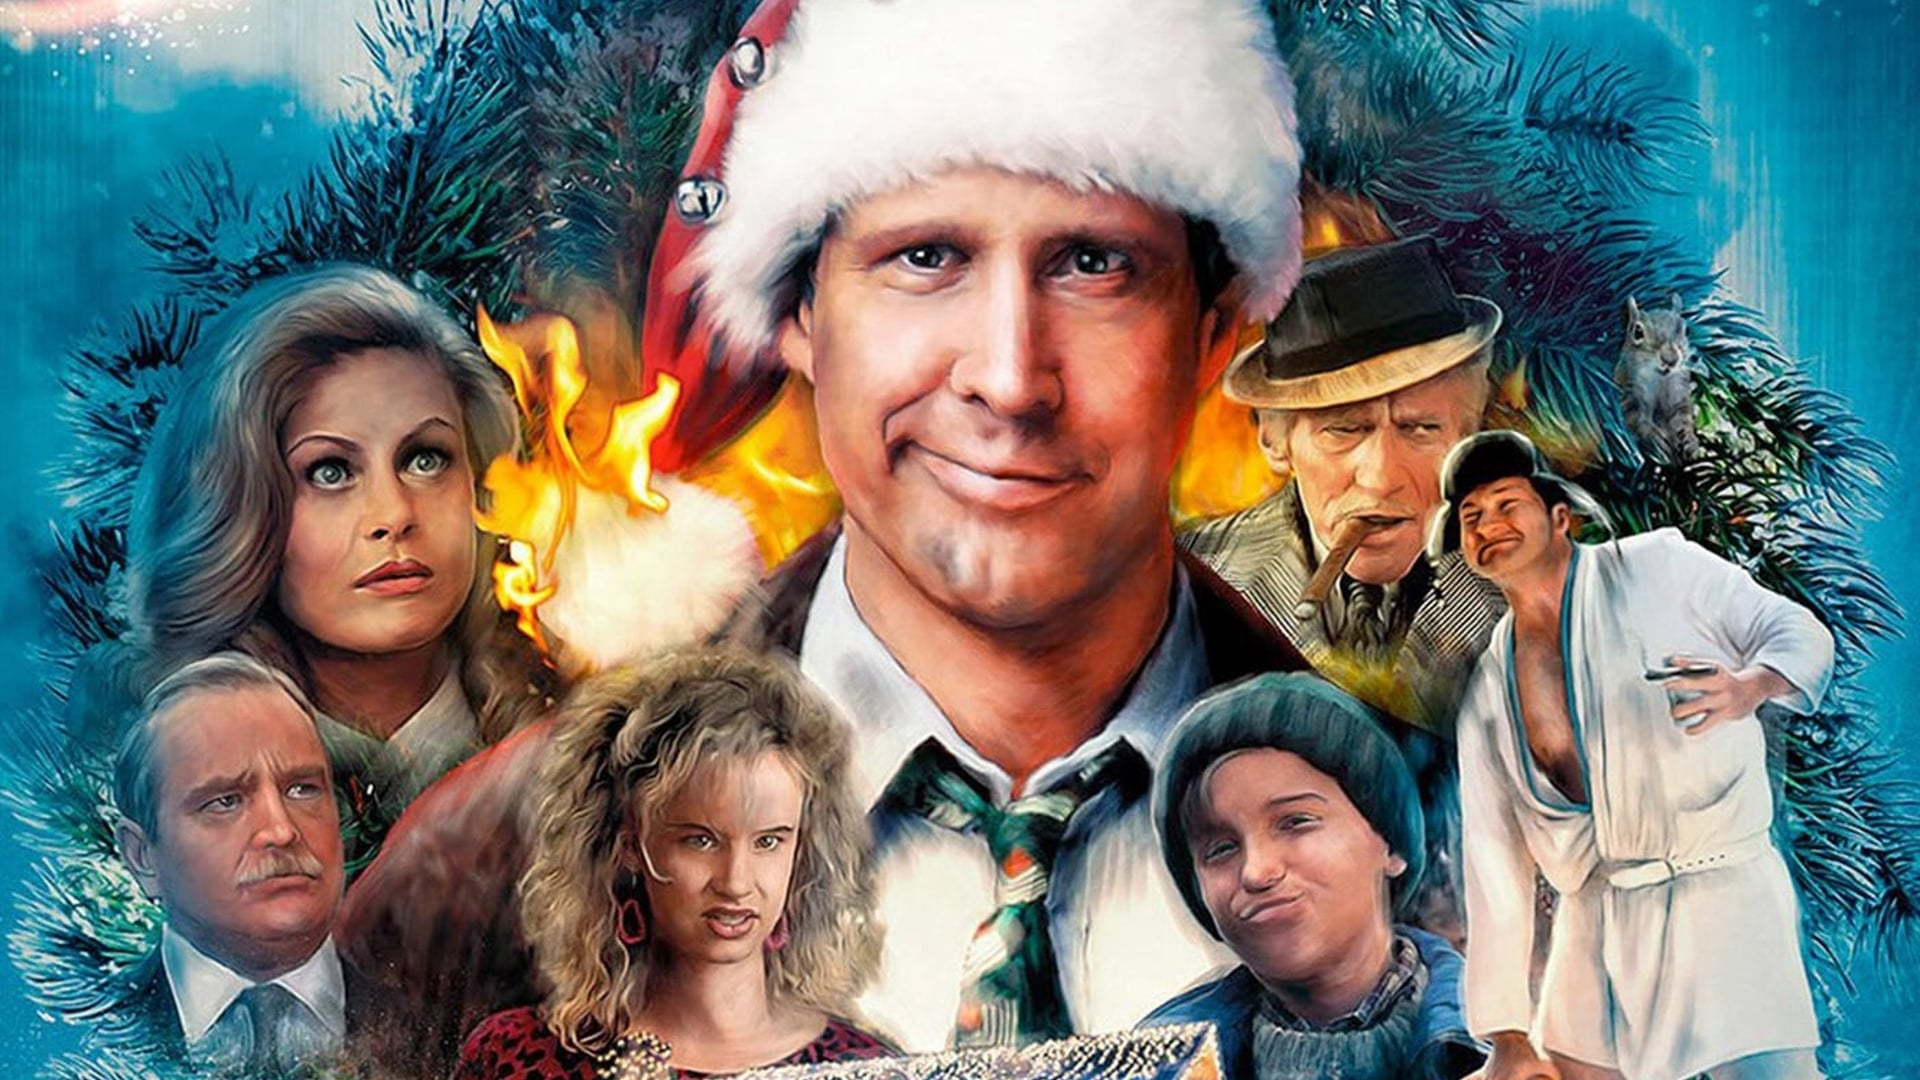 Watch National Lampoon's Christmas Vacation (1989) Full Movie